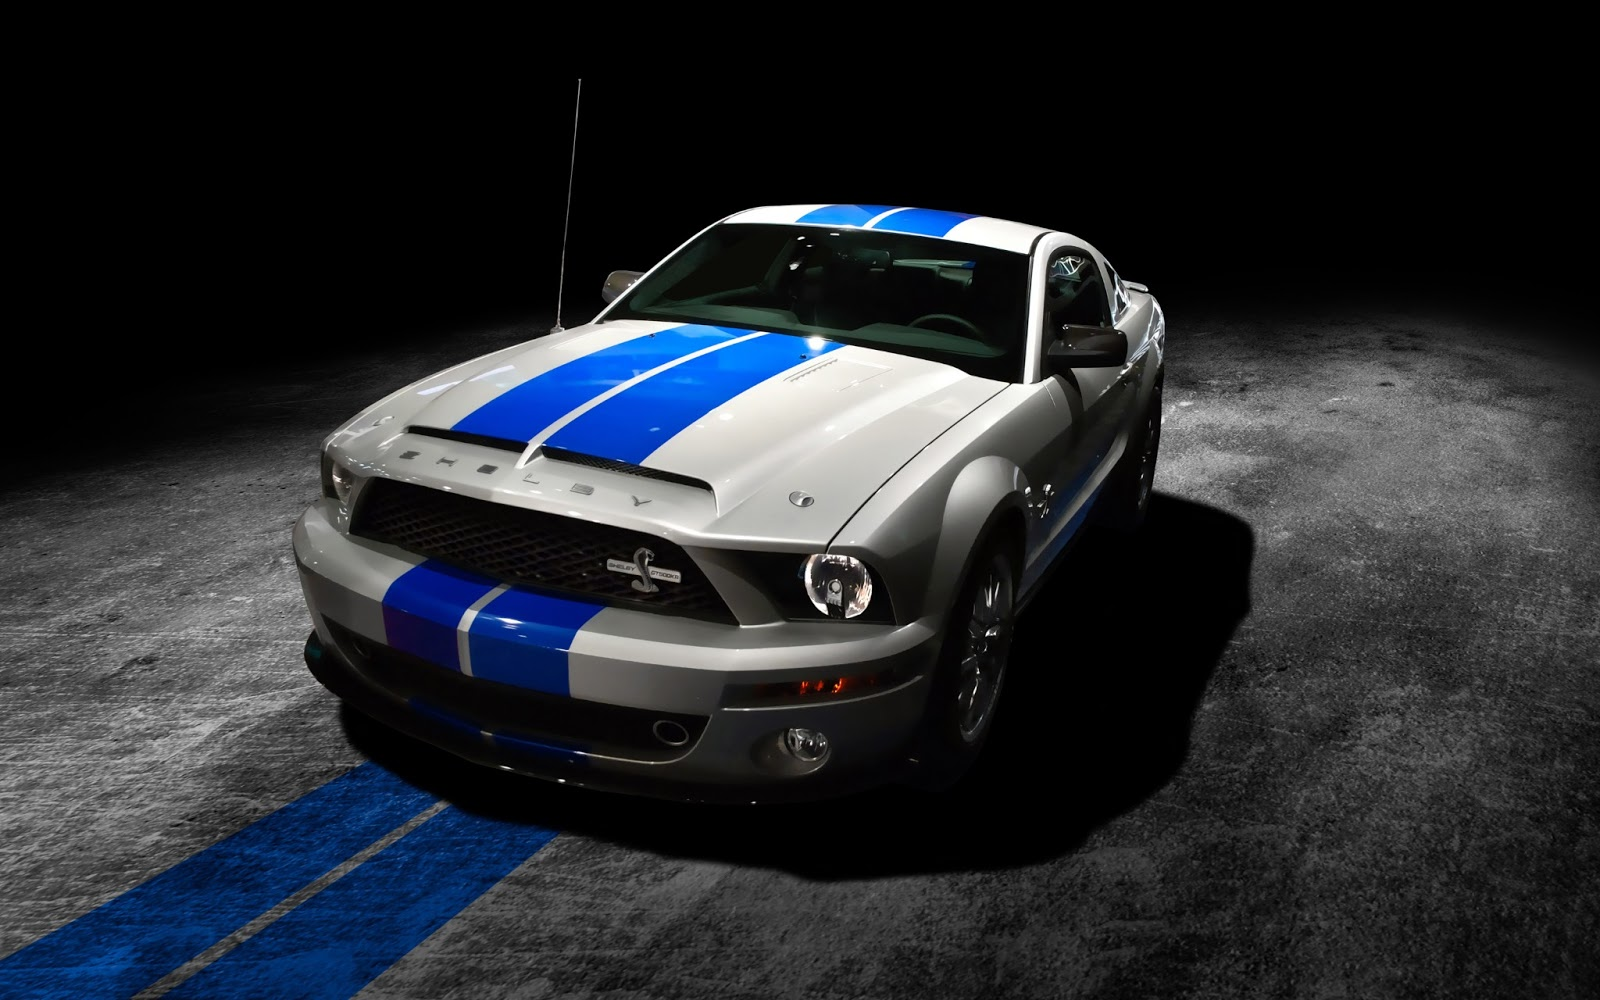 cars wallpapers full hd 1080p 199